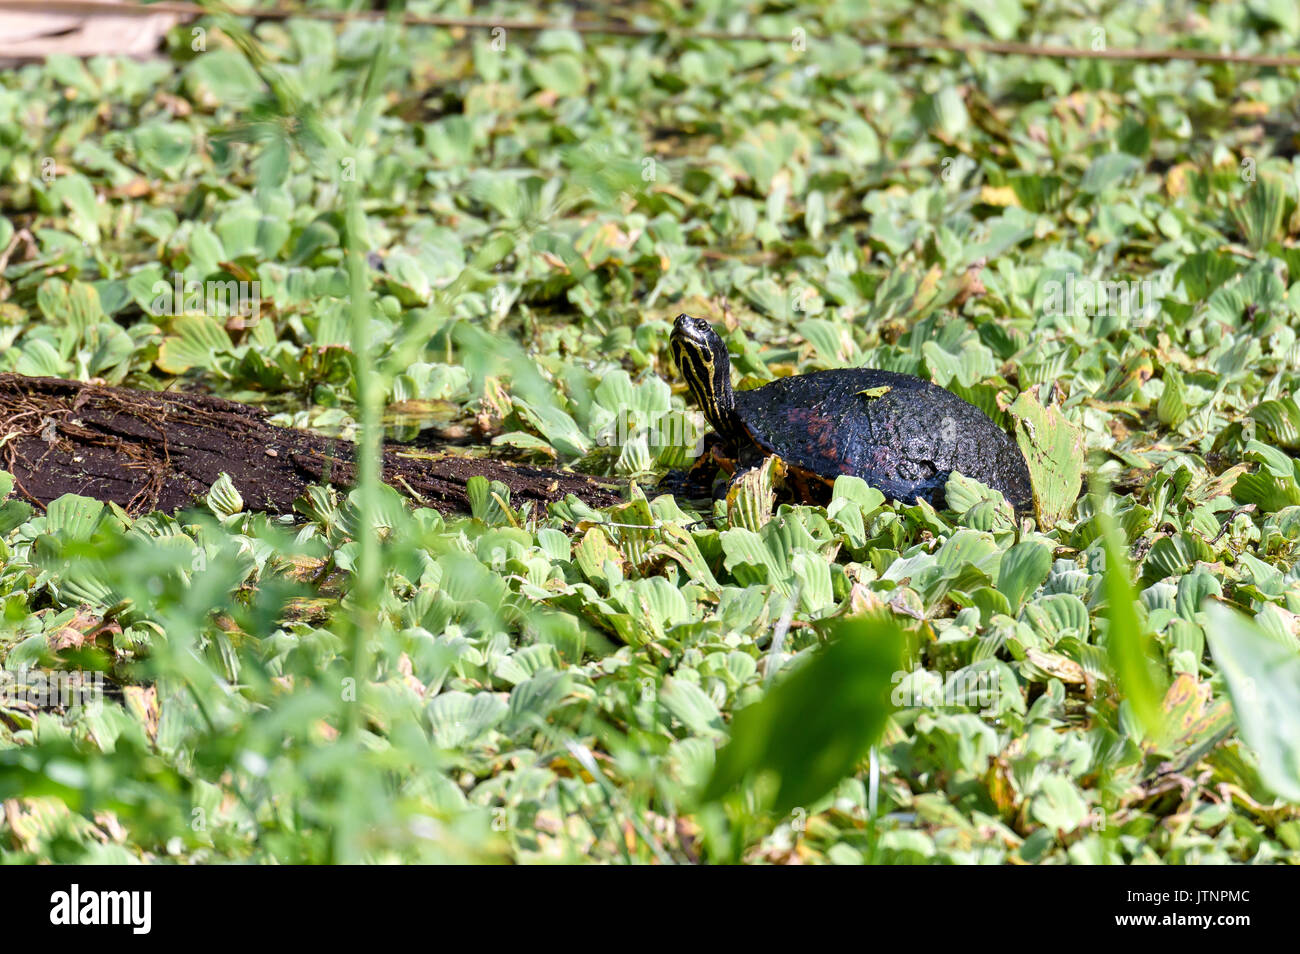 Florida red-bellied cooter (pseudemys nelsoni),  Corkscrew Swamp Sanctuary, Florida, USA Stock Photo